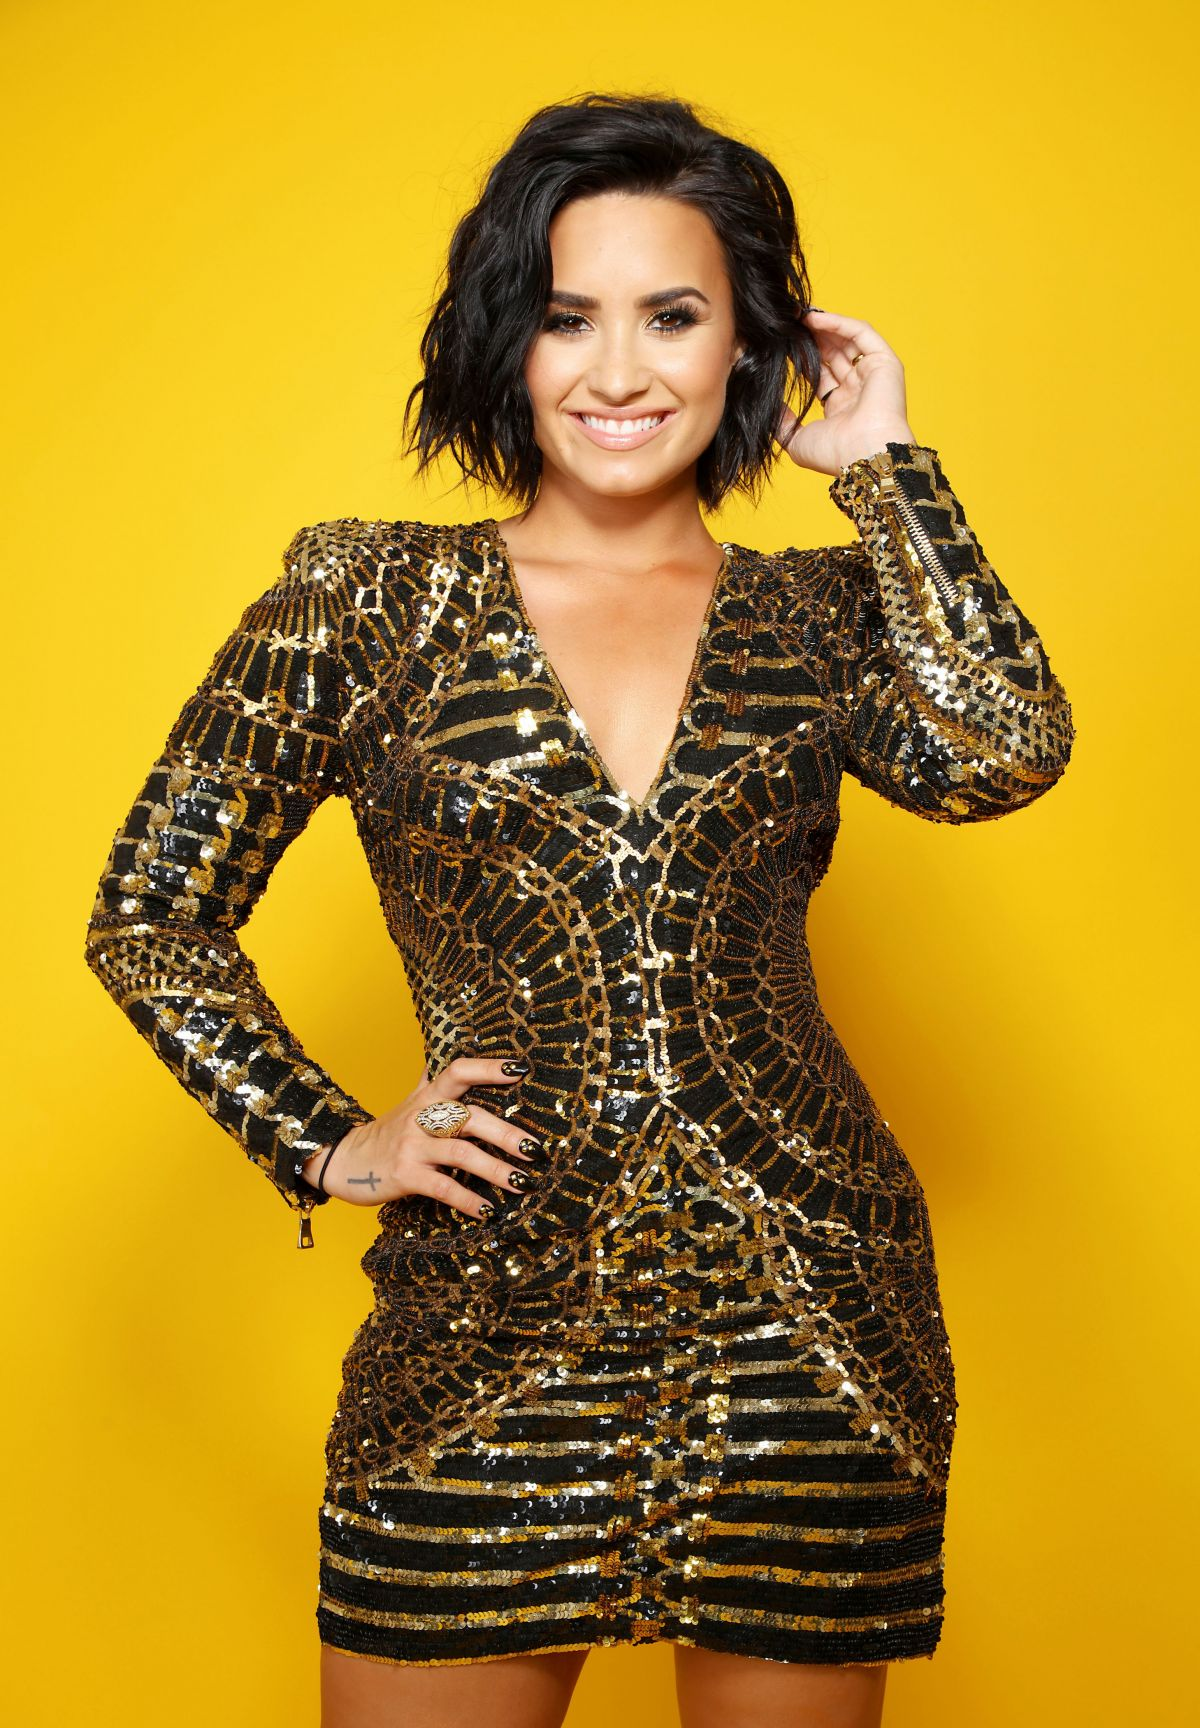 demi lovato - photo #19